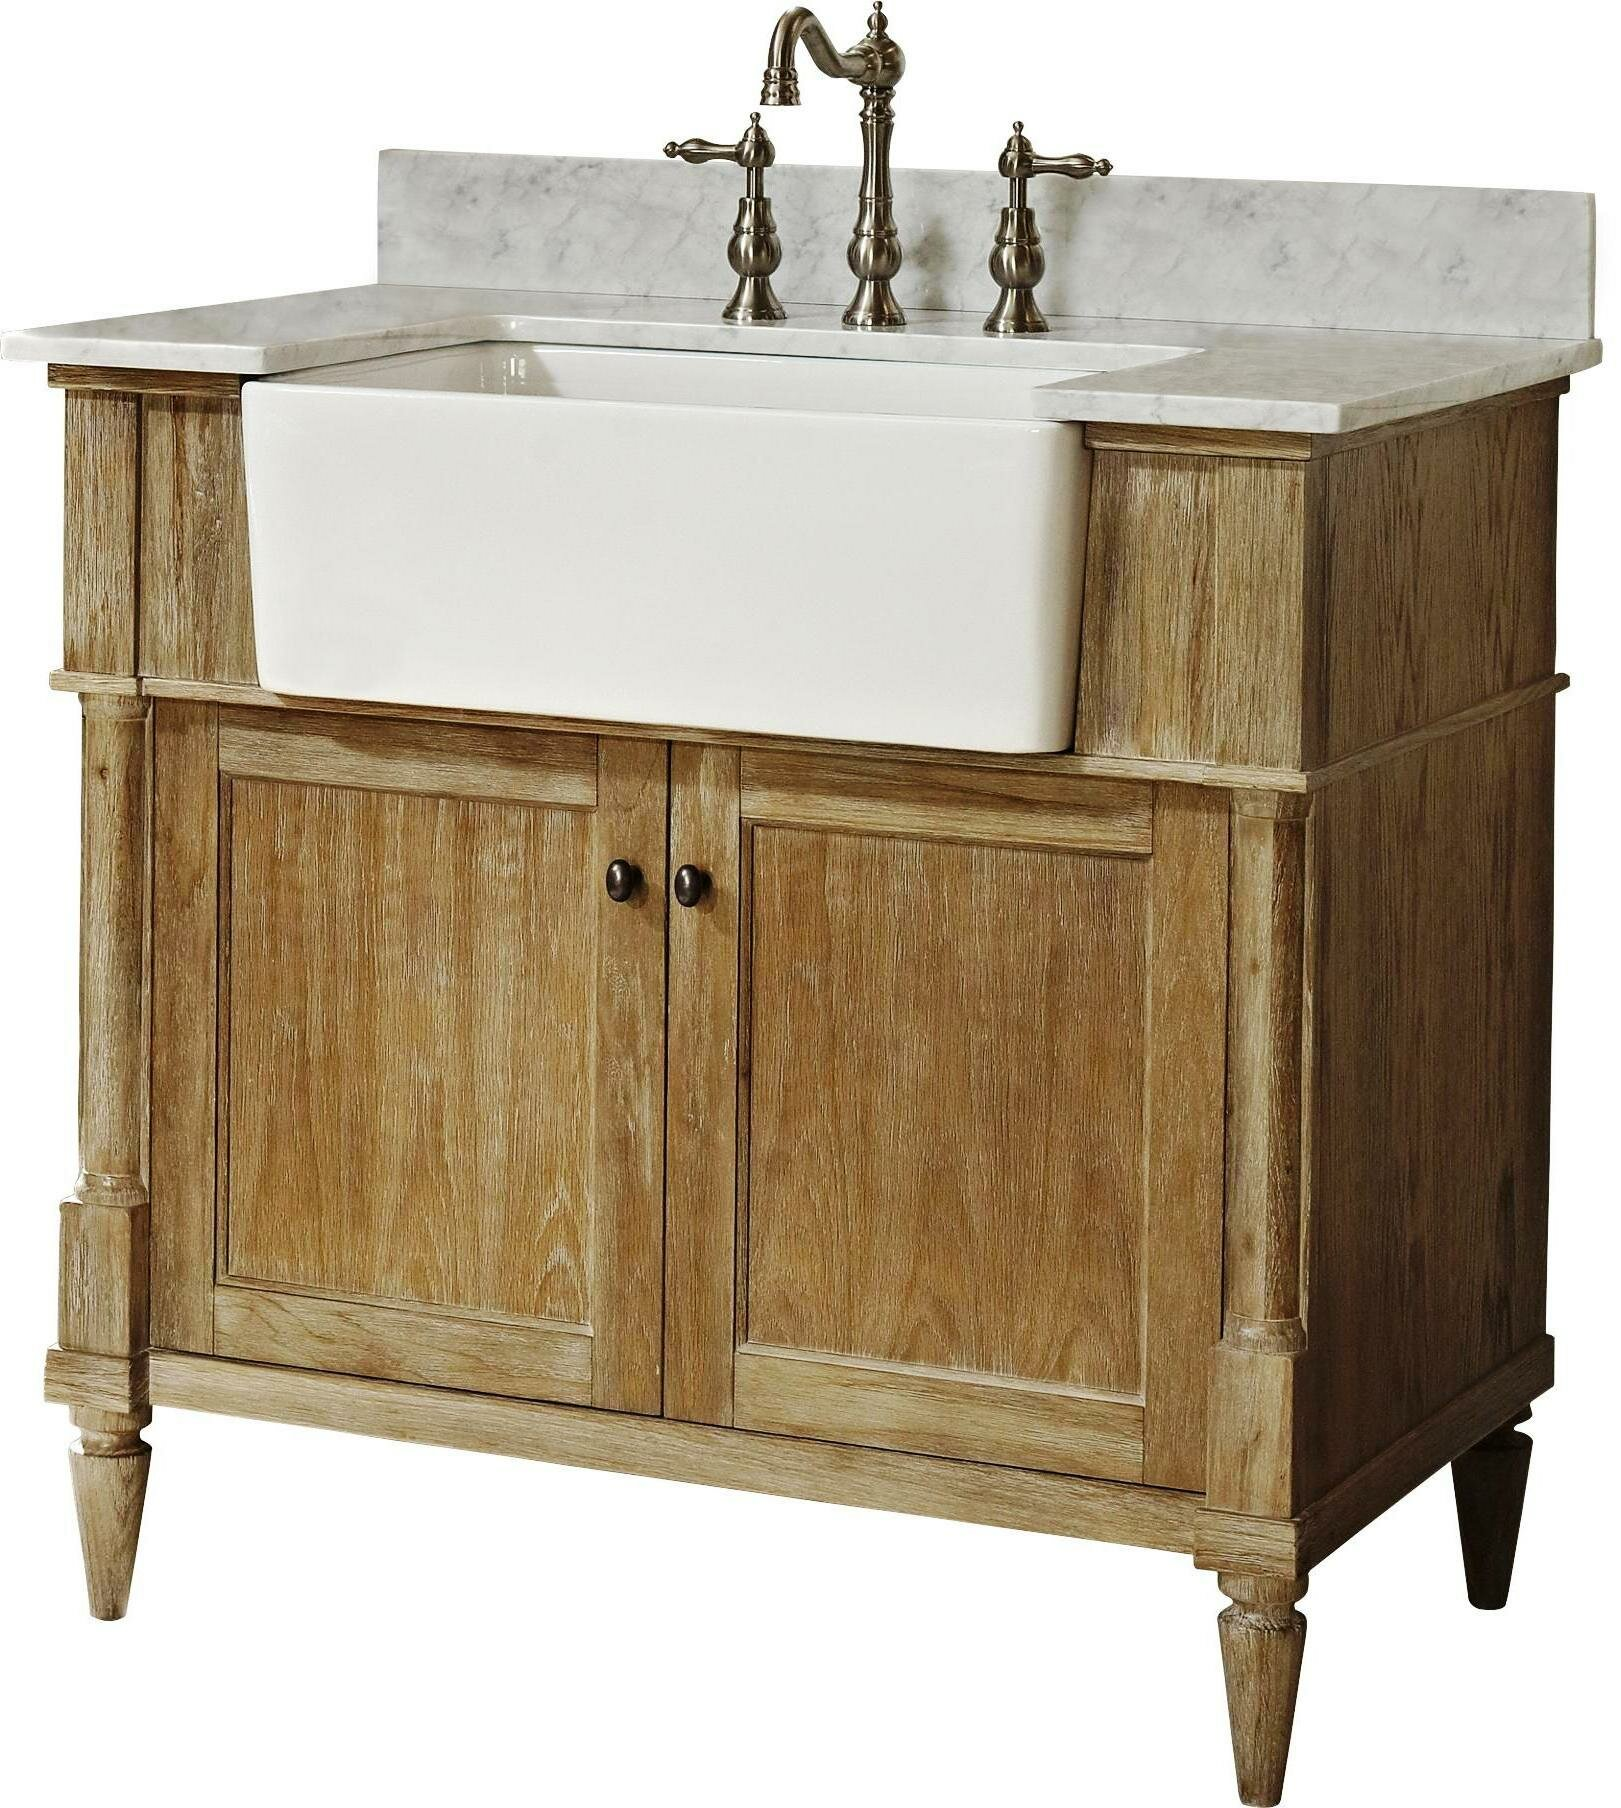 Bathroom Potterybarn Vanity Pottery Barn Sinks